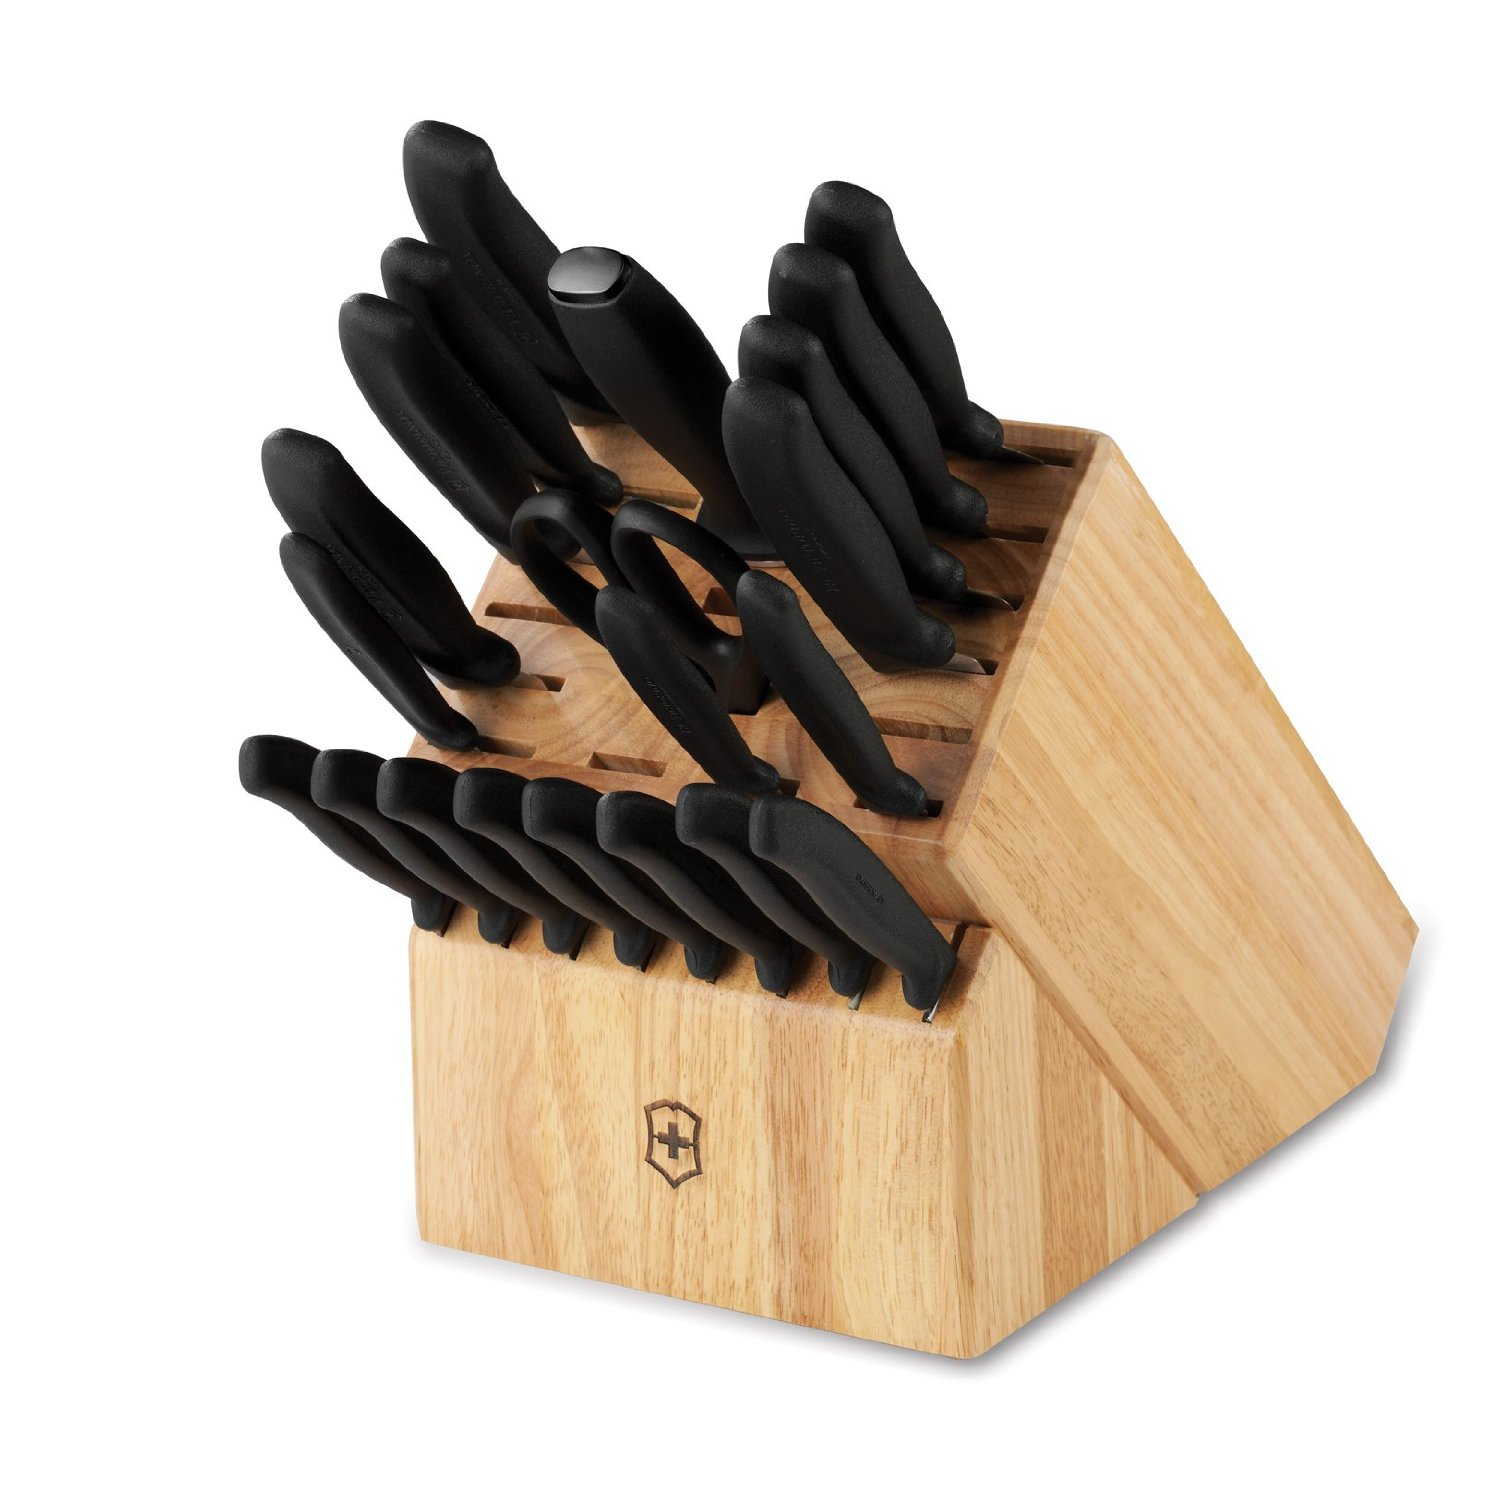 best kitchen knife sets best kitchen knifes chef knife sets kitchen knife set viewing gallery